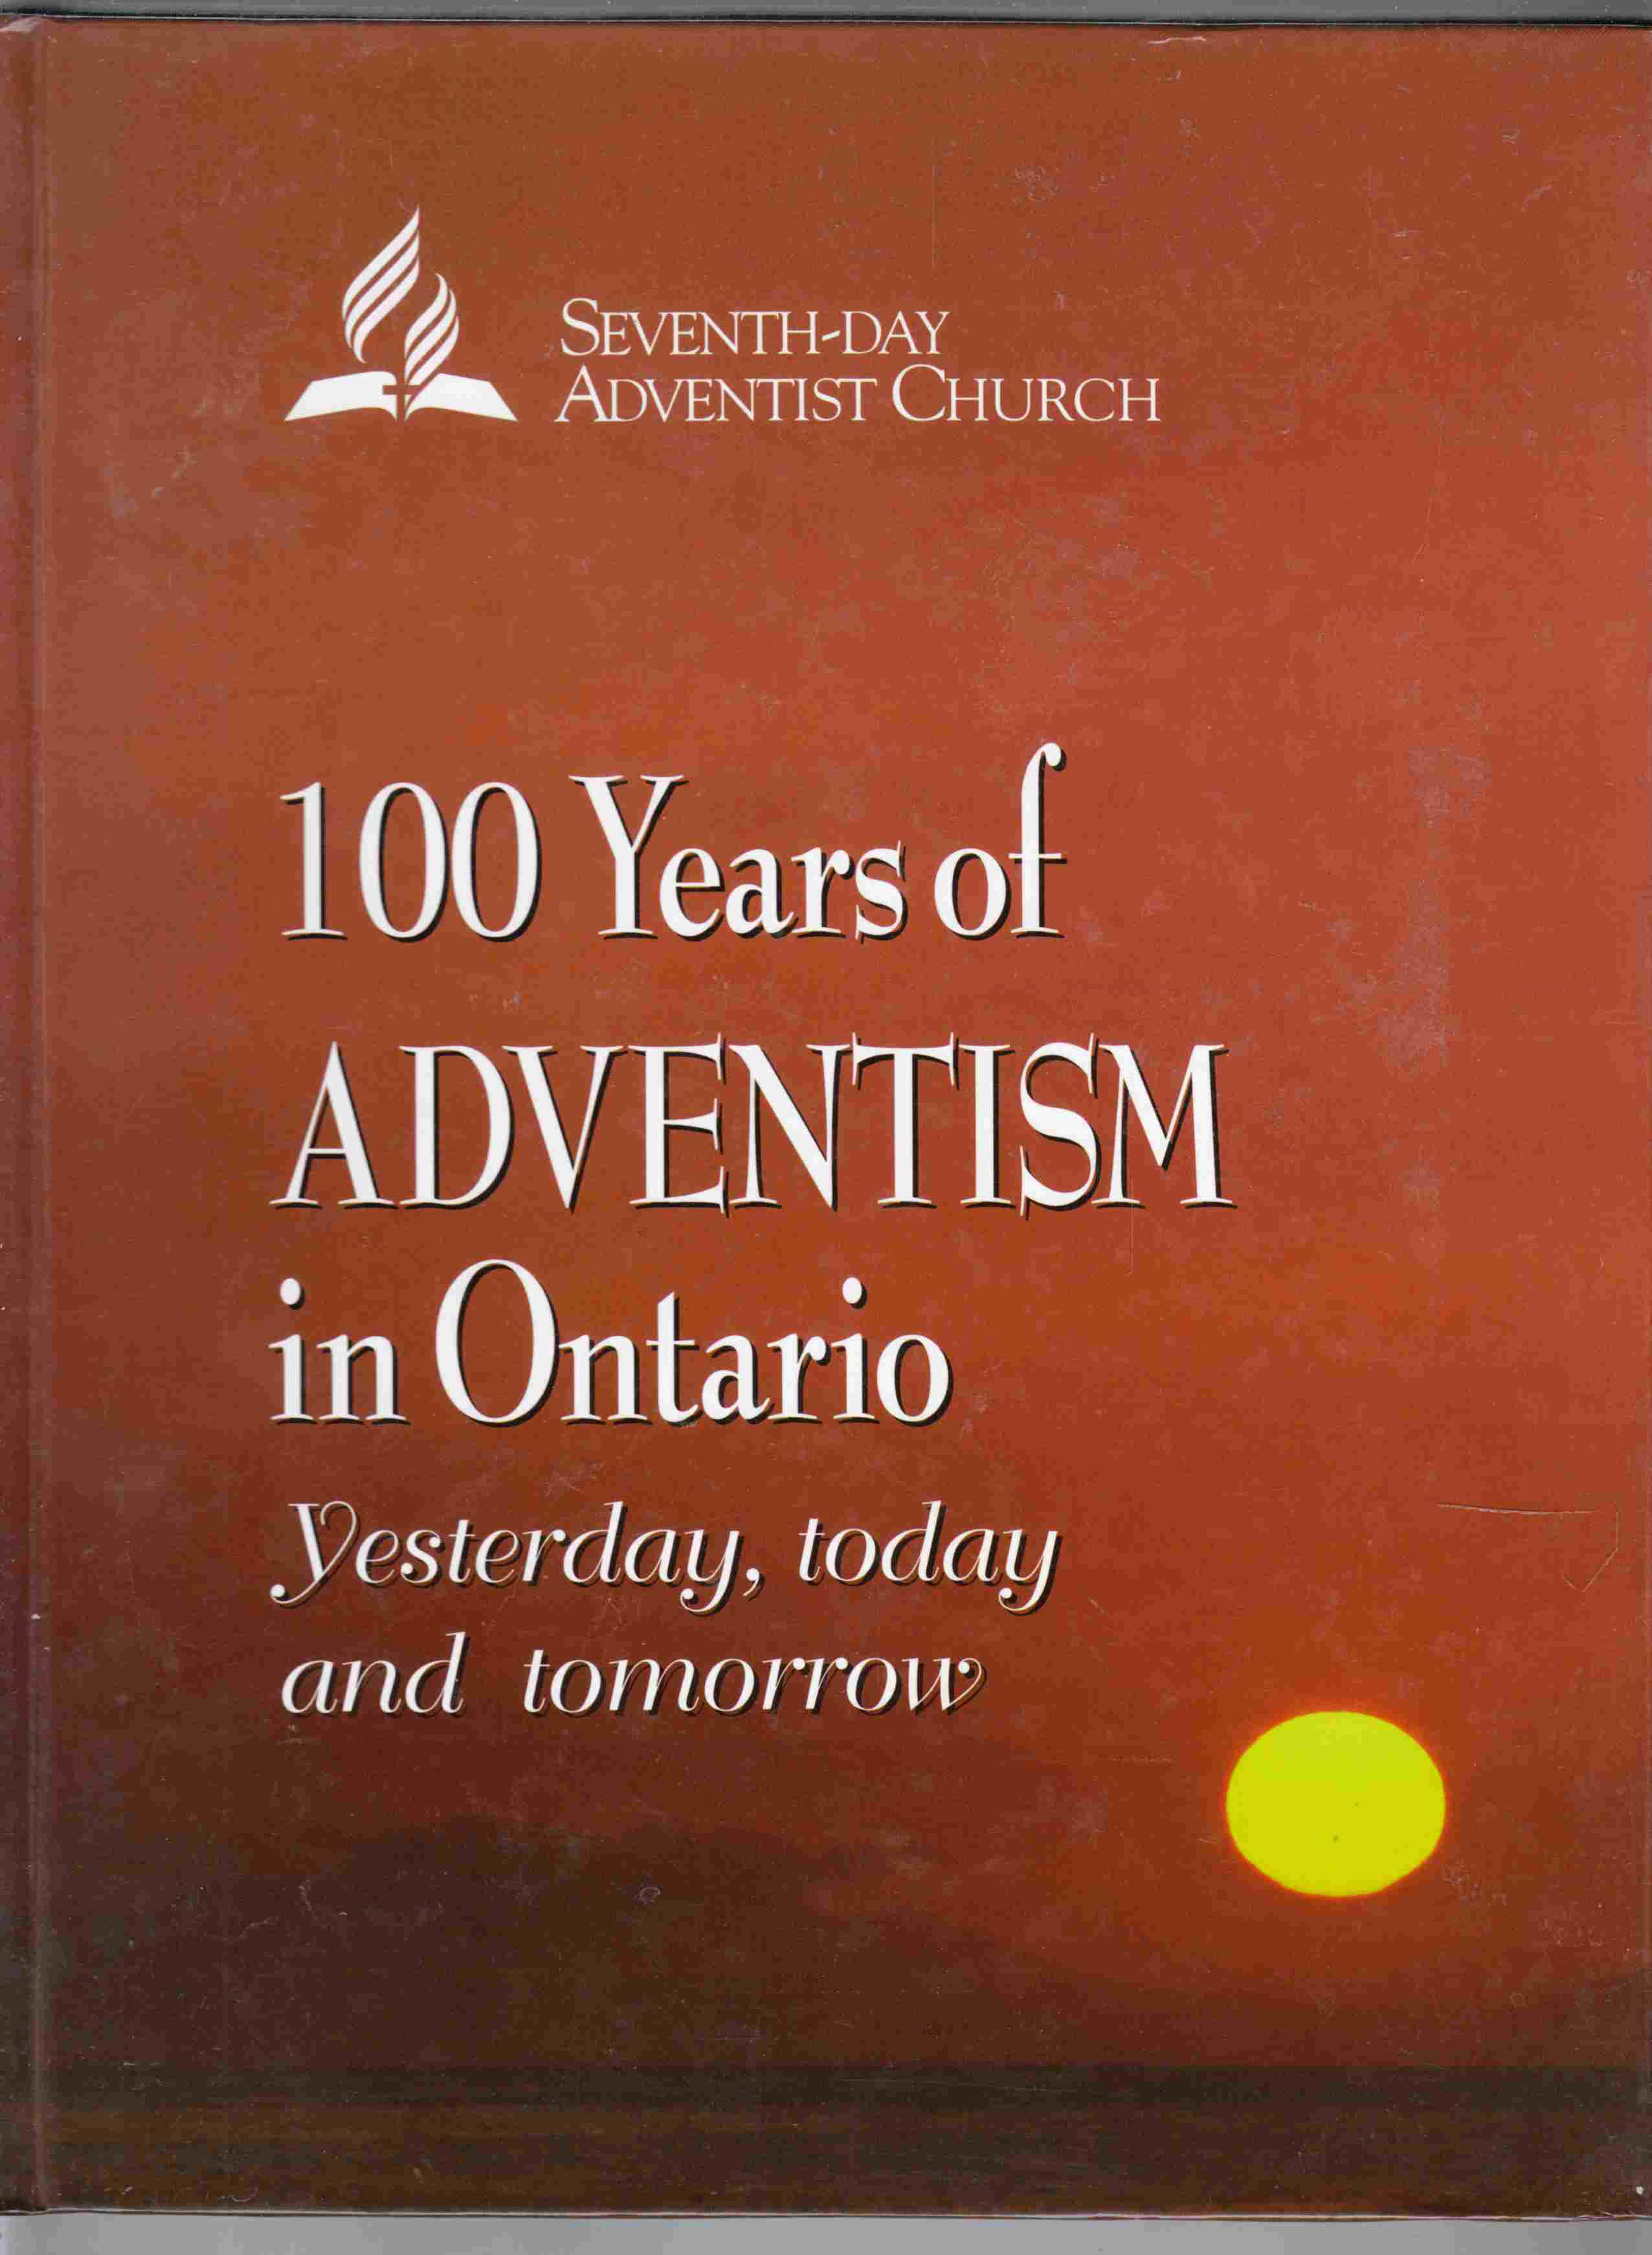 Image for 100 Years of Adventism in Ontario Yesterday, Today and Tomorrow